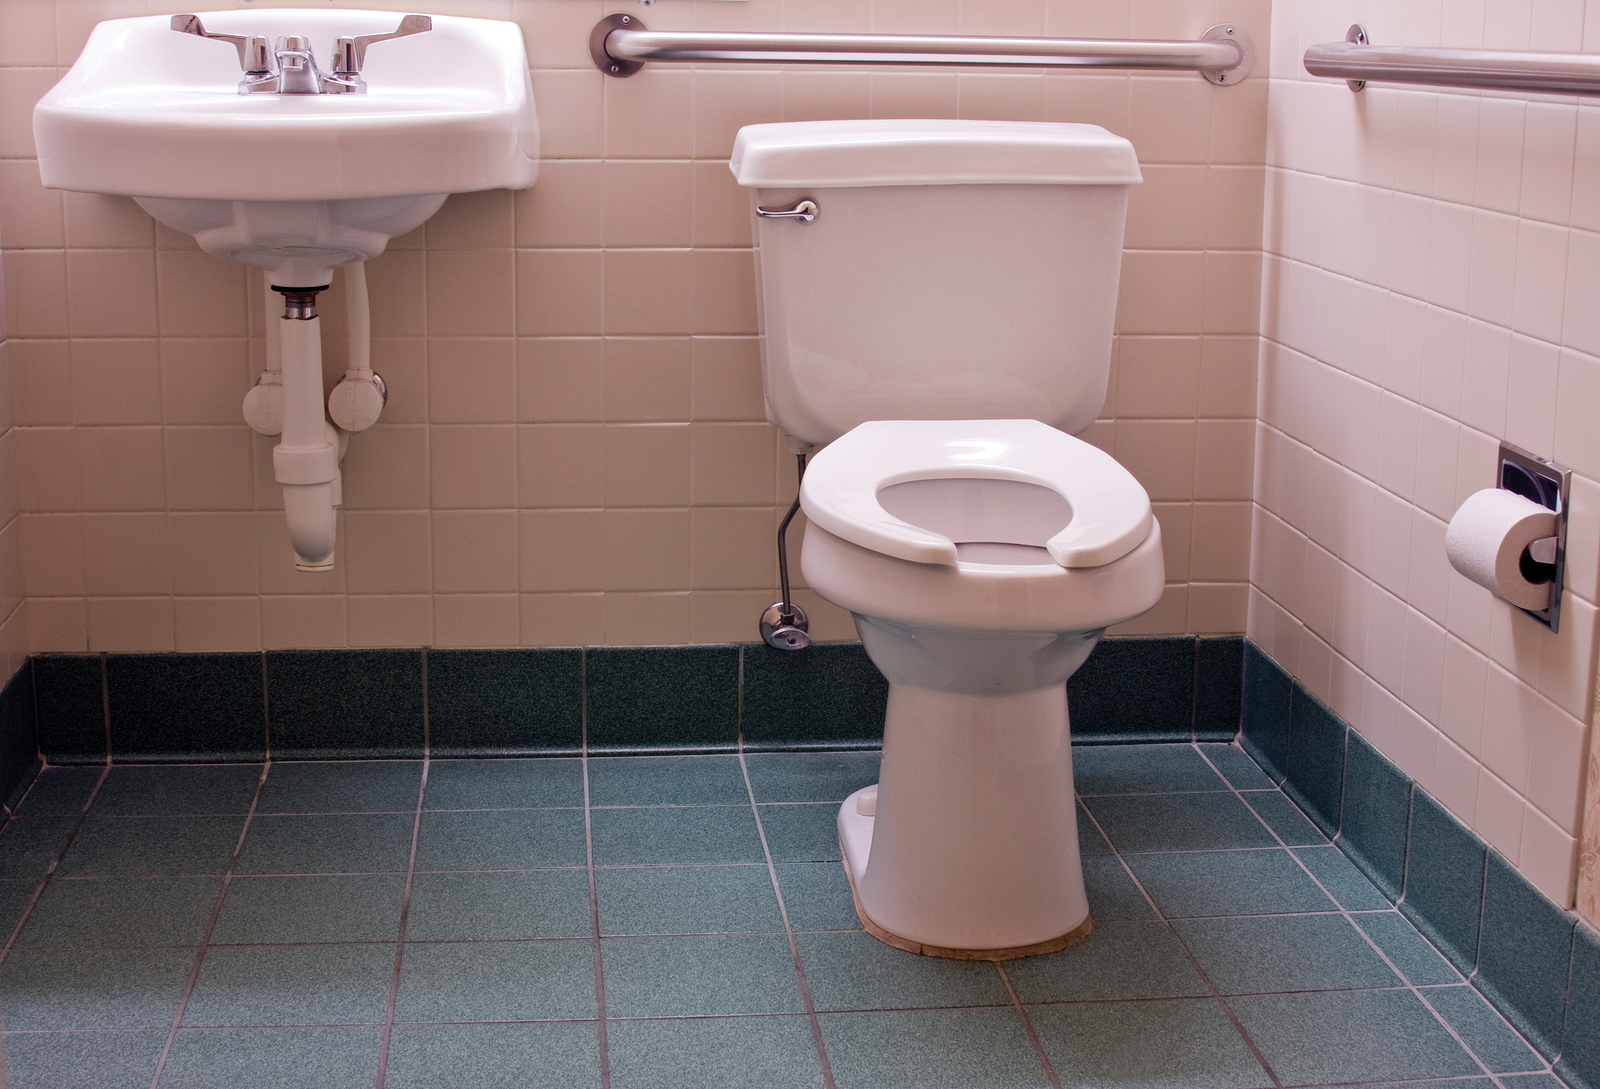 In the case of handicap-accessible toilet compartments, designers must remember some washroom accessories require a minimum clear fl oor area of 750 x 1200 mm (30 to 47 in.), and others must be accessible from a W/C. Photo © BigStock/Dave Willman